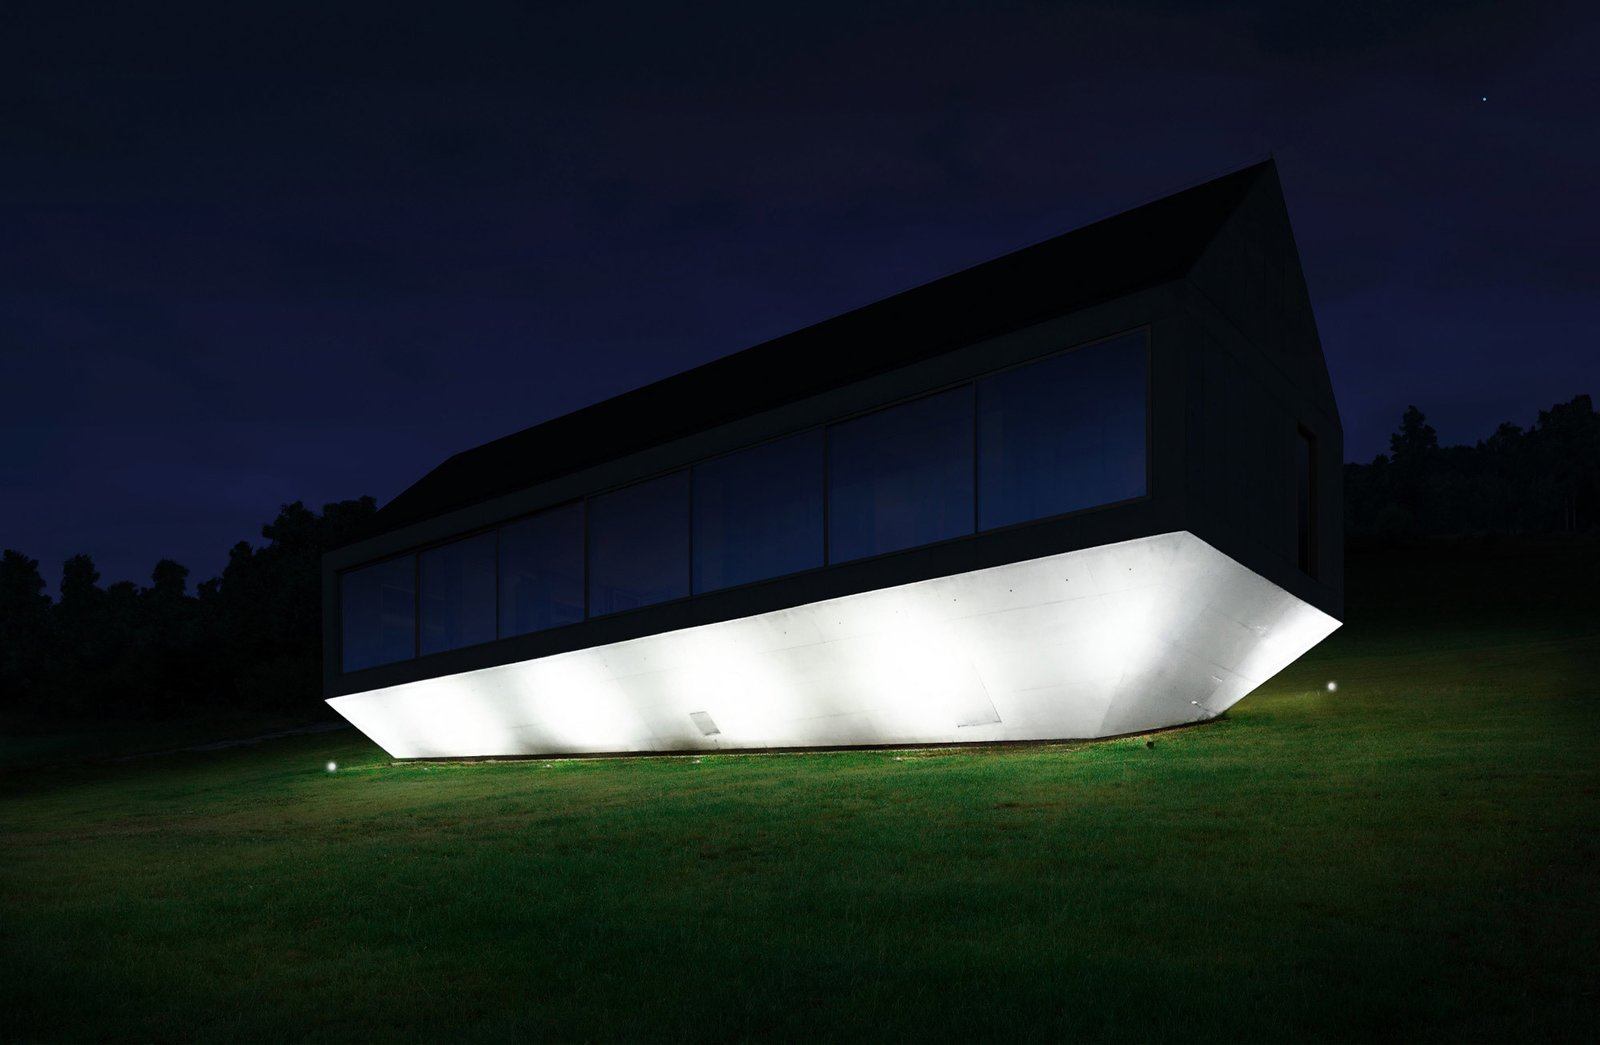 Photo 8 of 8 in A Striking Modern House Built In A Pastoral Landscape